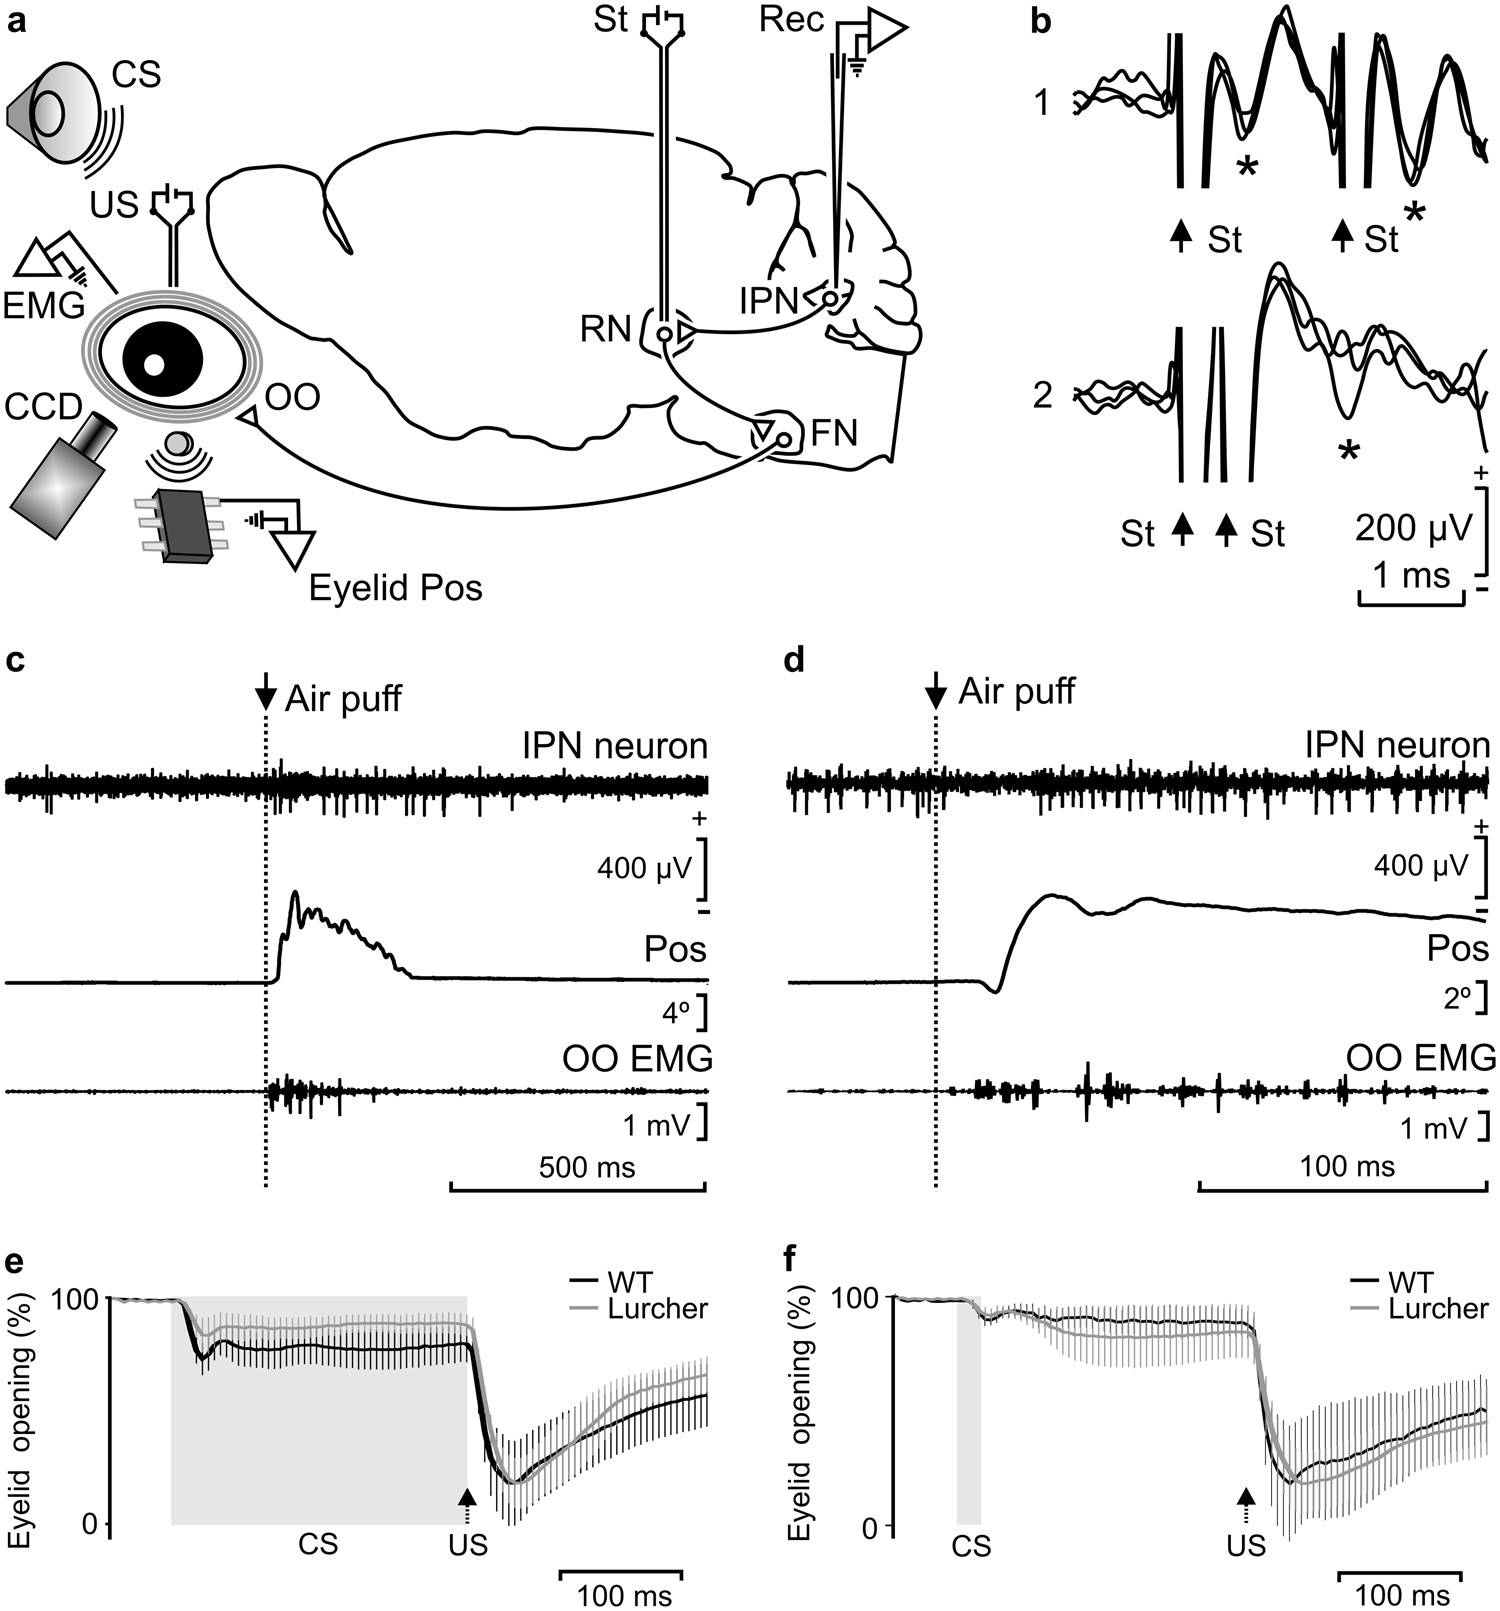 Timing Correlations Between Cerebellar Interpositus Neuronal Firing Block Diagram Of The Egt Emg Cursor Control System Eye Gaze And Classically Conditioned Eyelid Responses In Wild Type Lurcher Mice Scientific